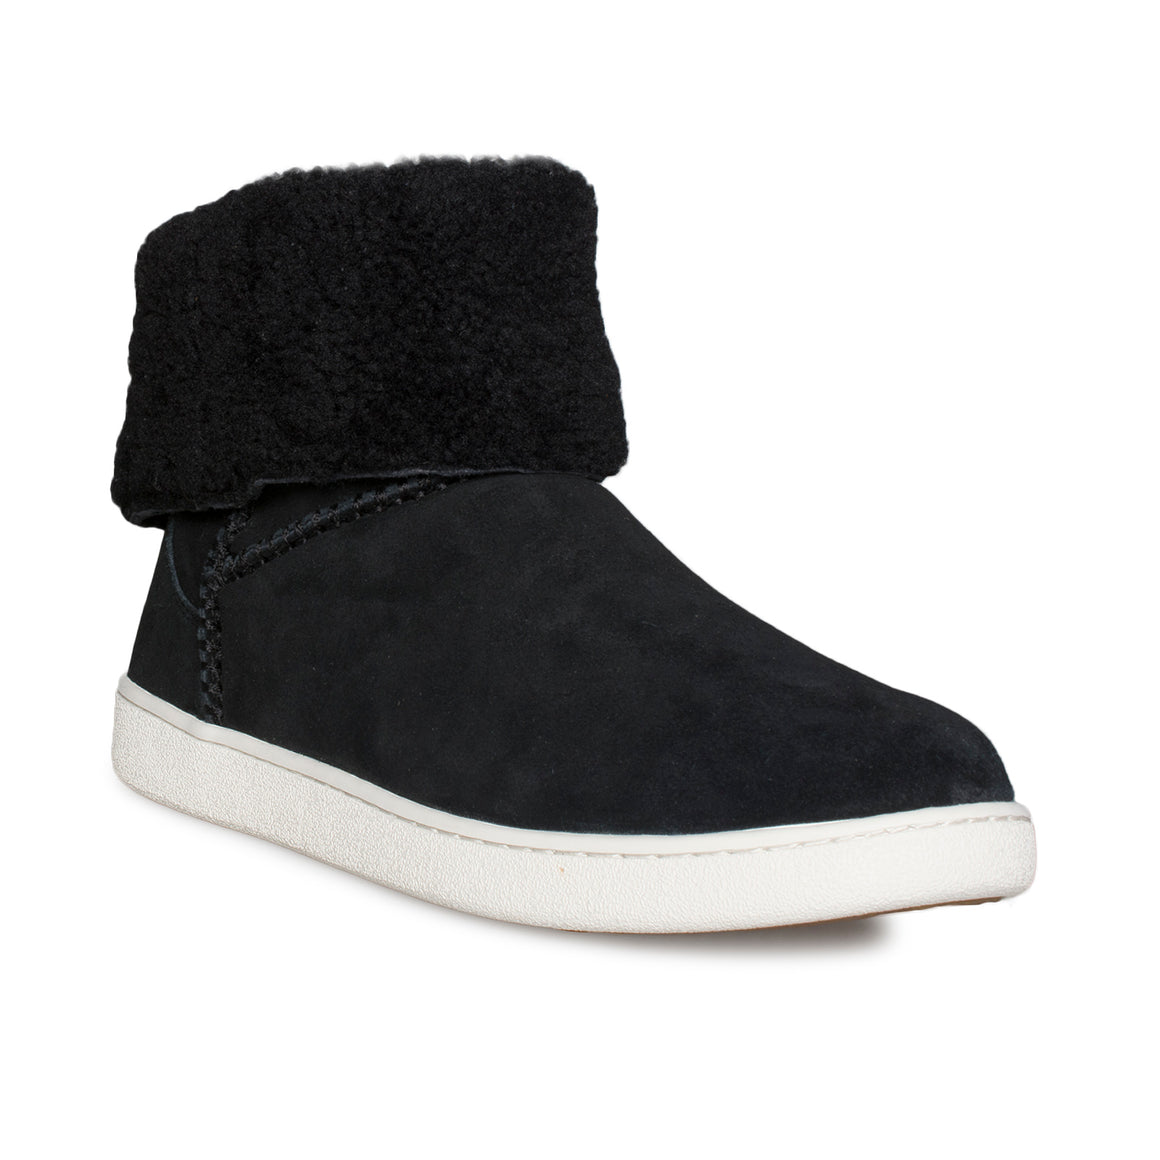 UGG Mika Classic Black Sneakers - Women's